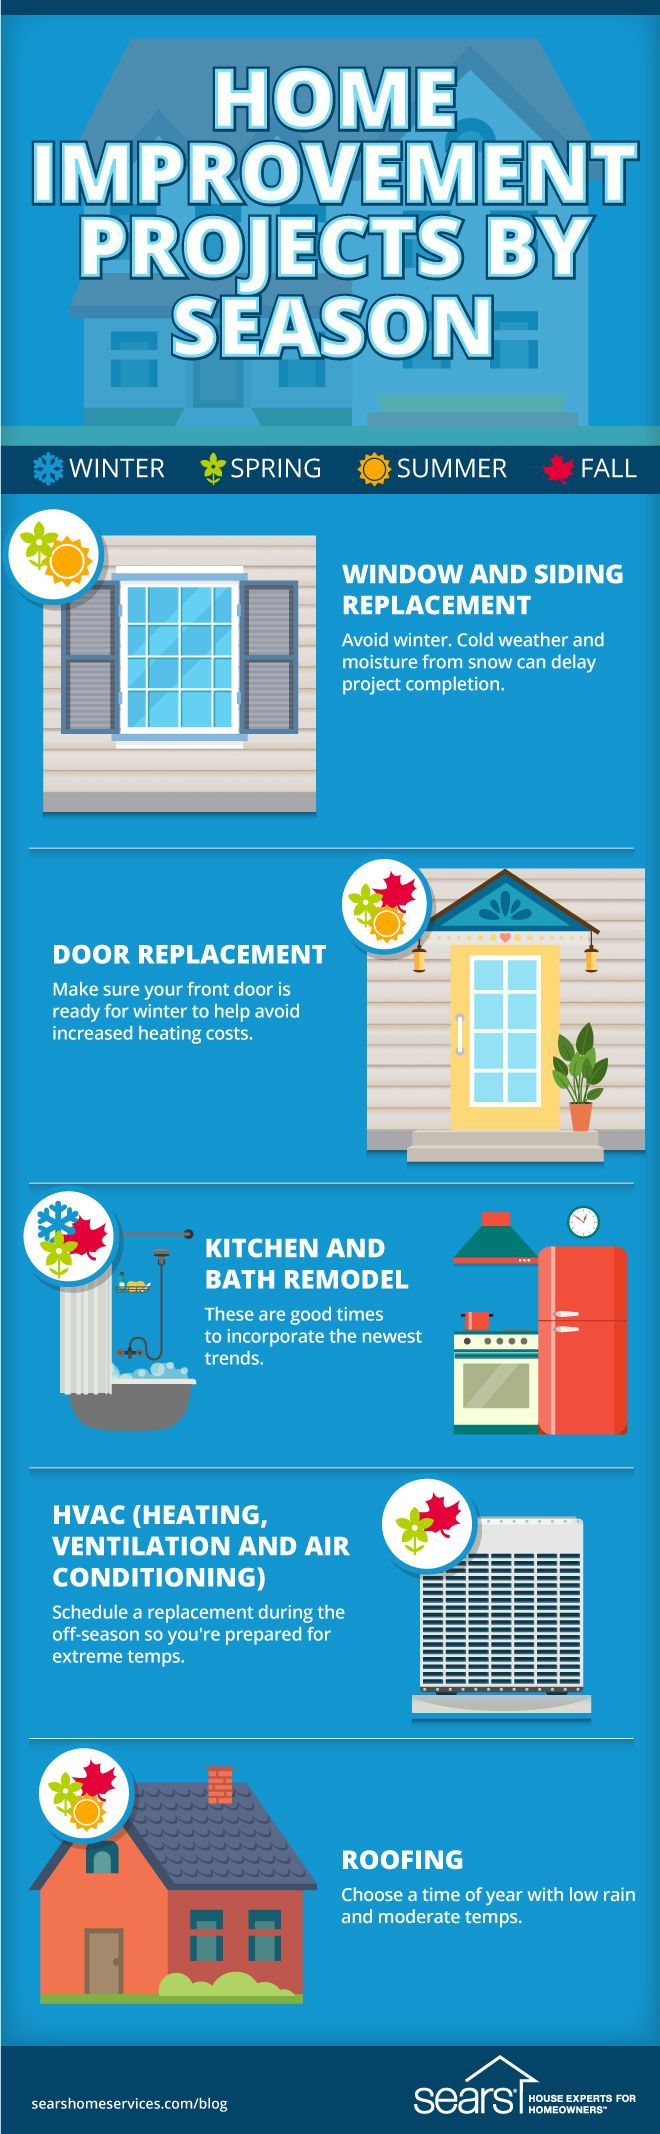 30 best Home Improvement Hacks & Help images on Pinterest | Home ...